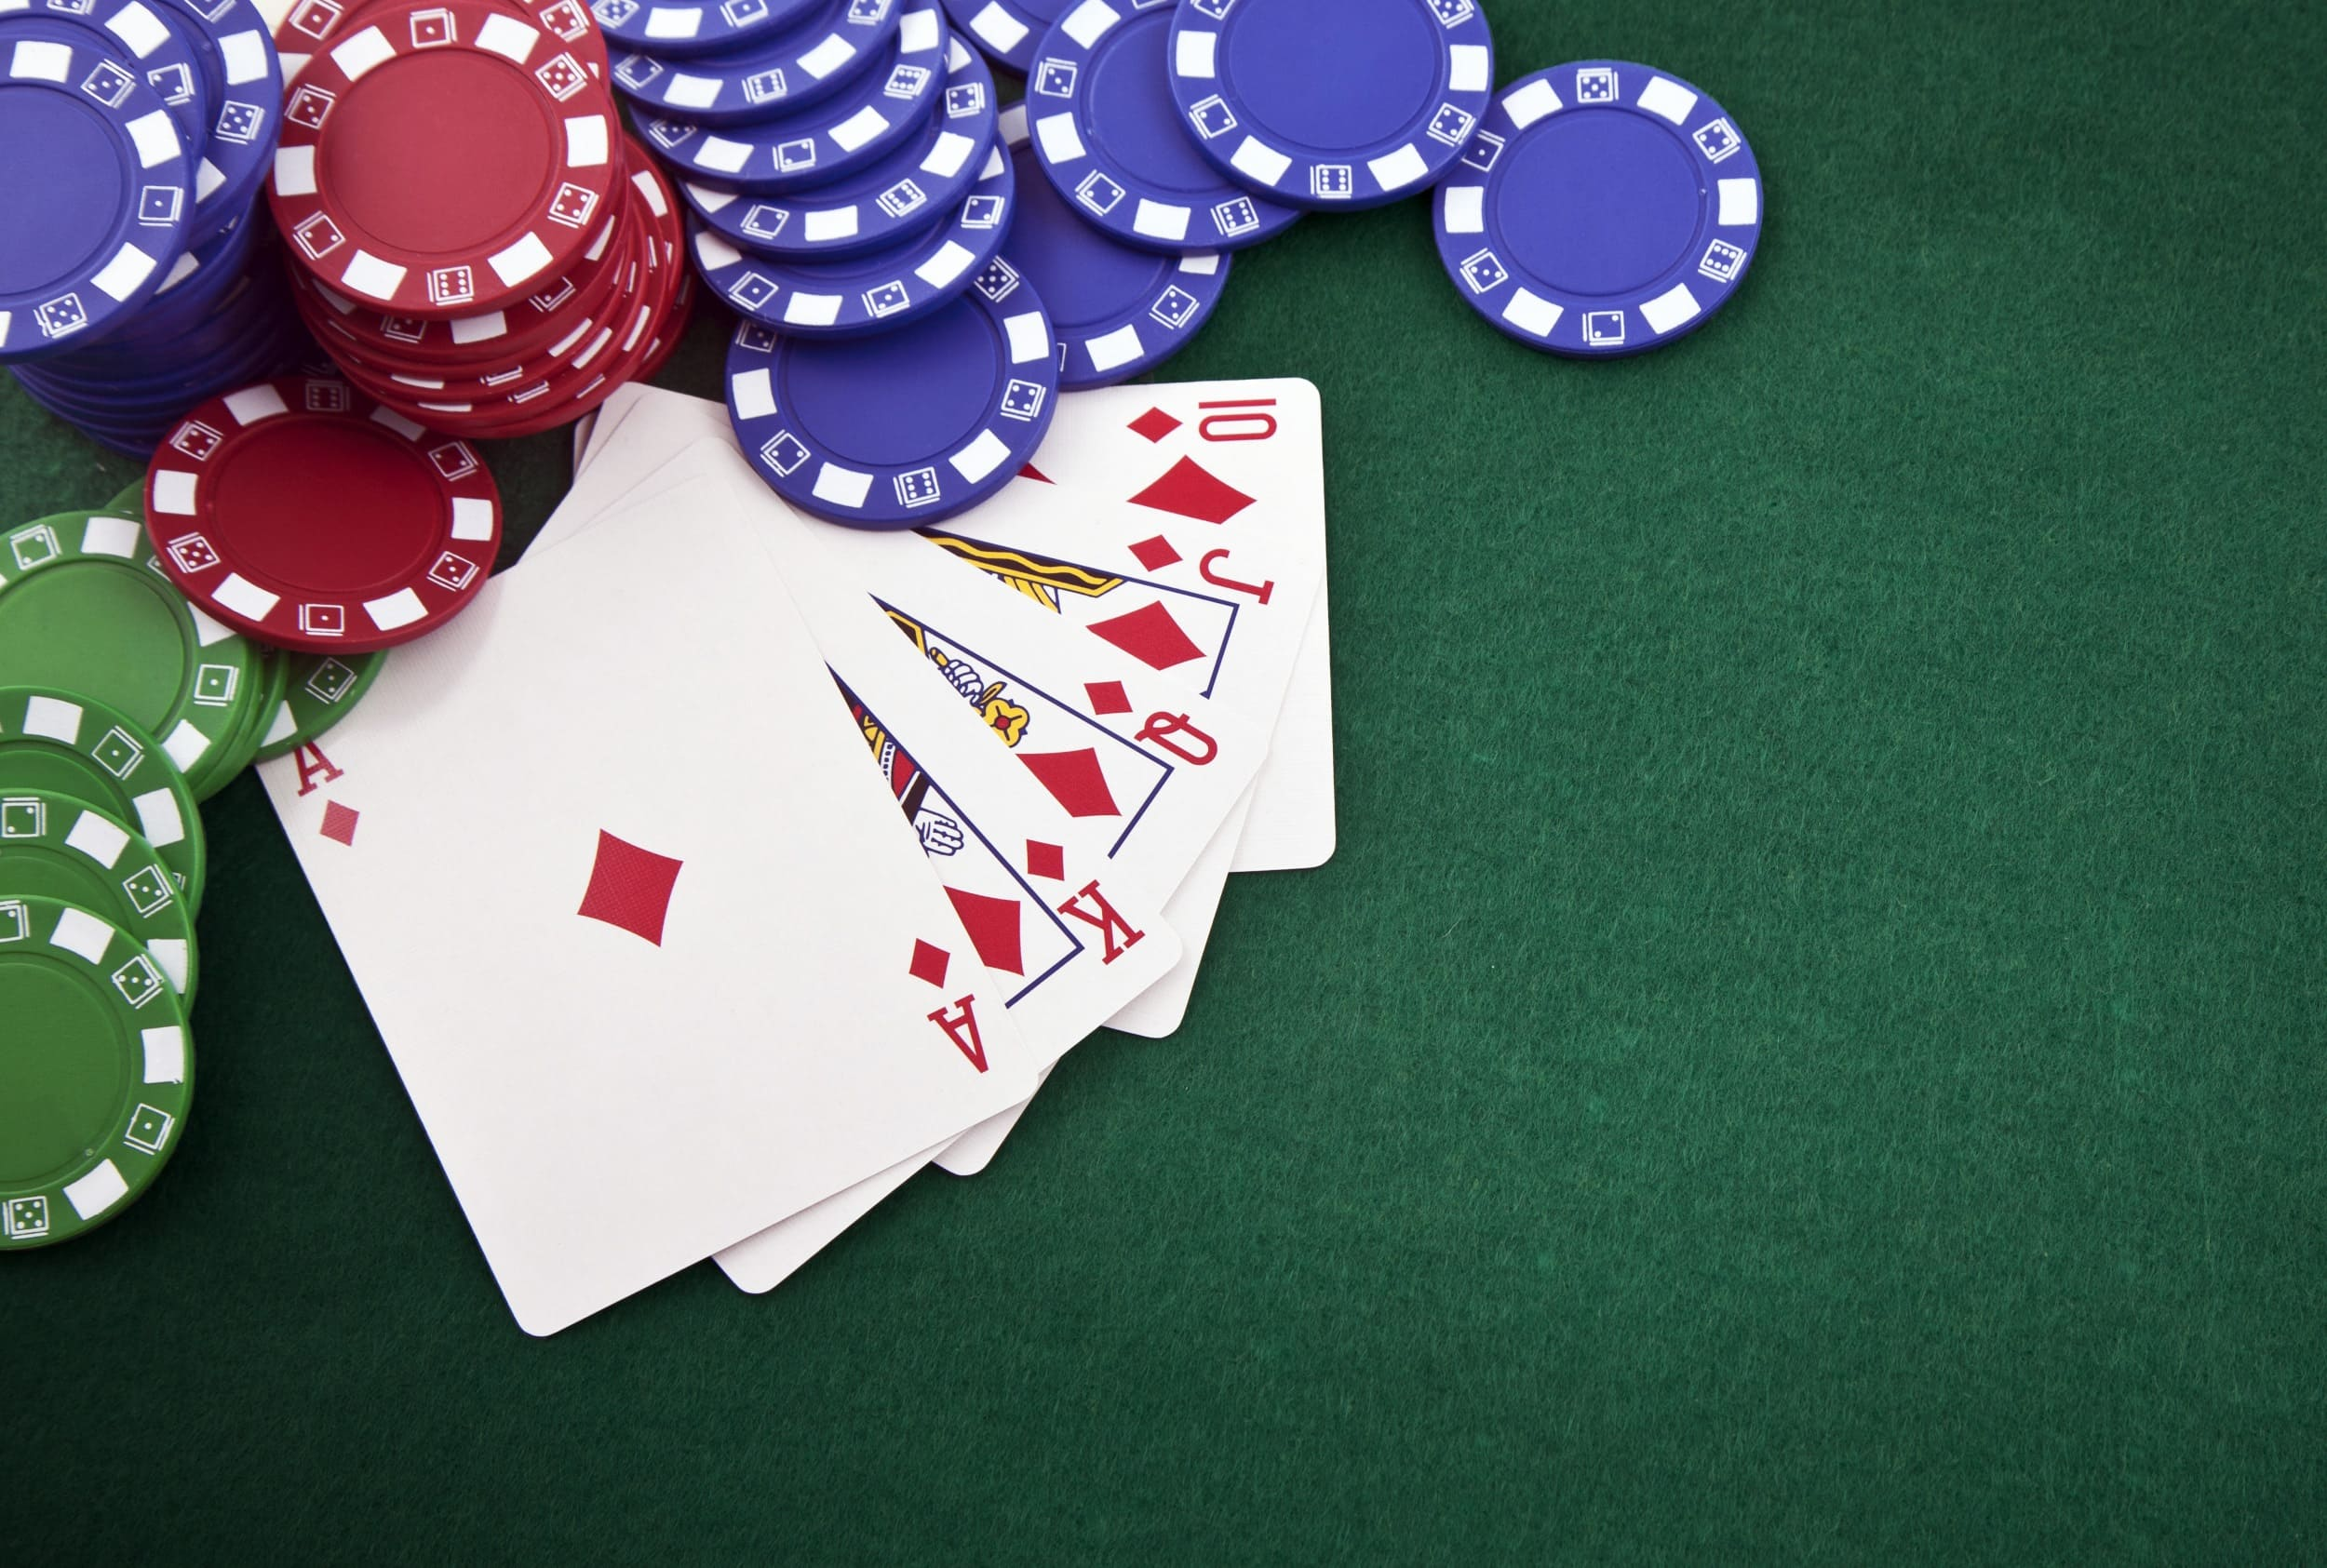 Tips for Playing Indonesian Online Poker to Meet Life's Needs